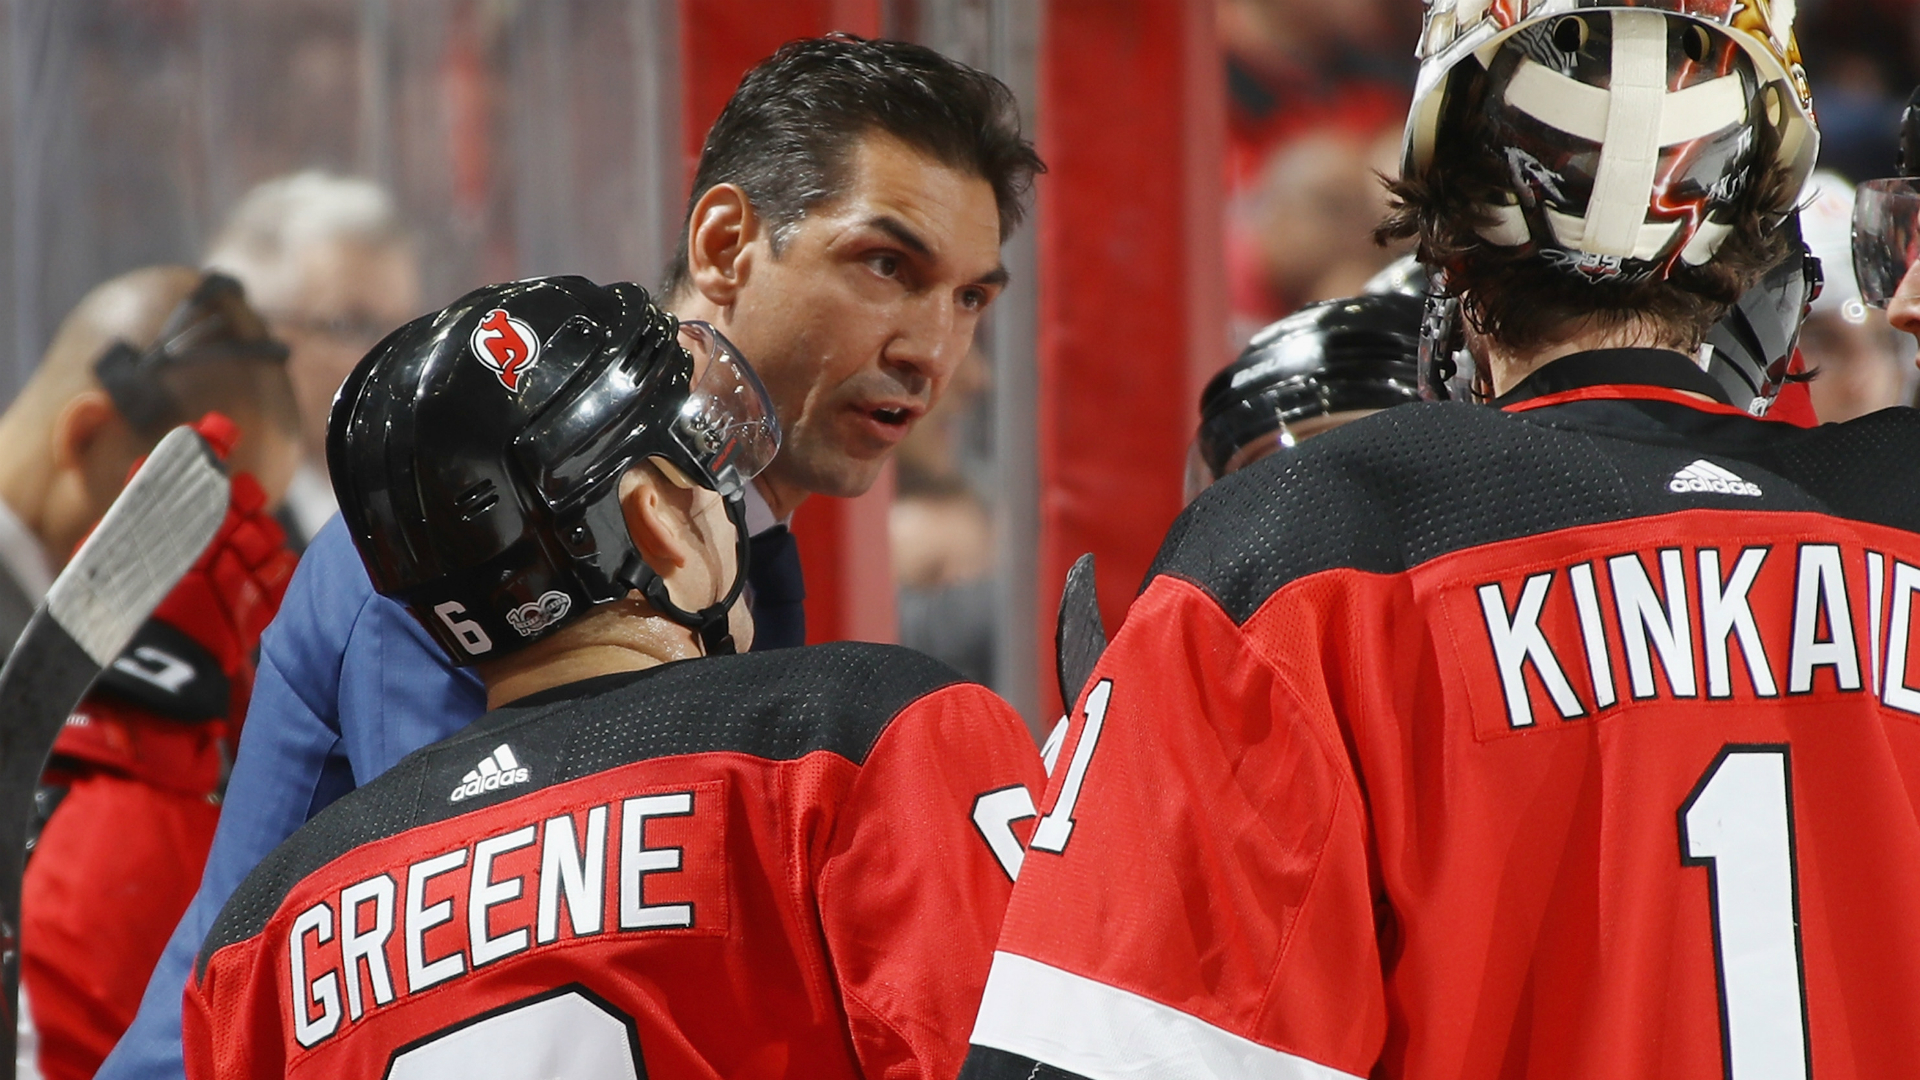 New Jersey Devils finding new identity under interim head coach Alain Nasreddine: 'Use our speed and play fast'